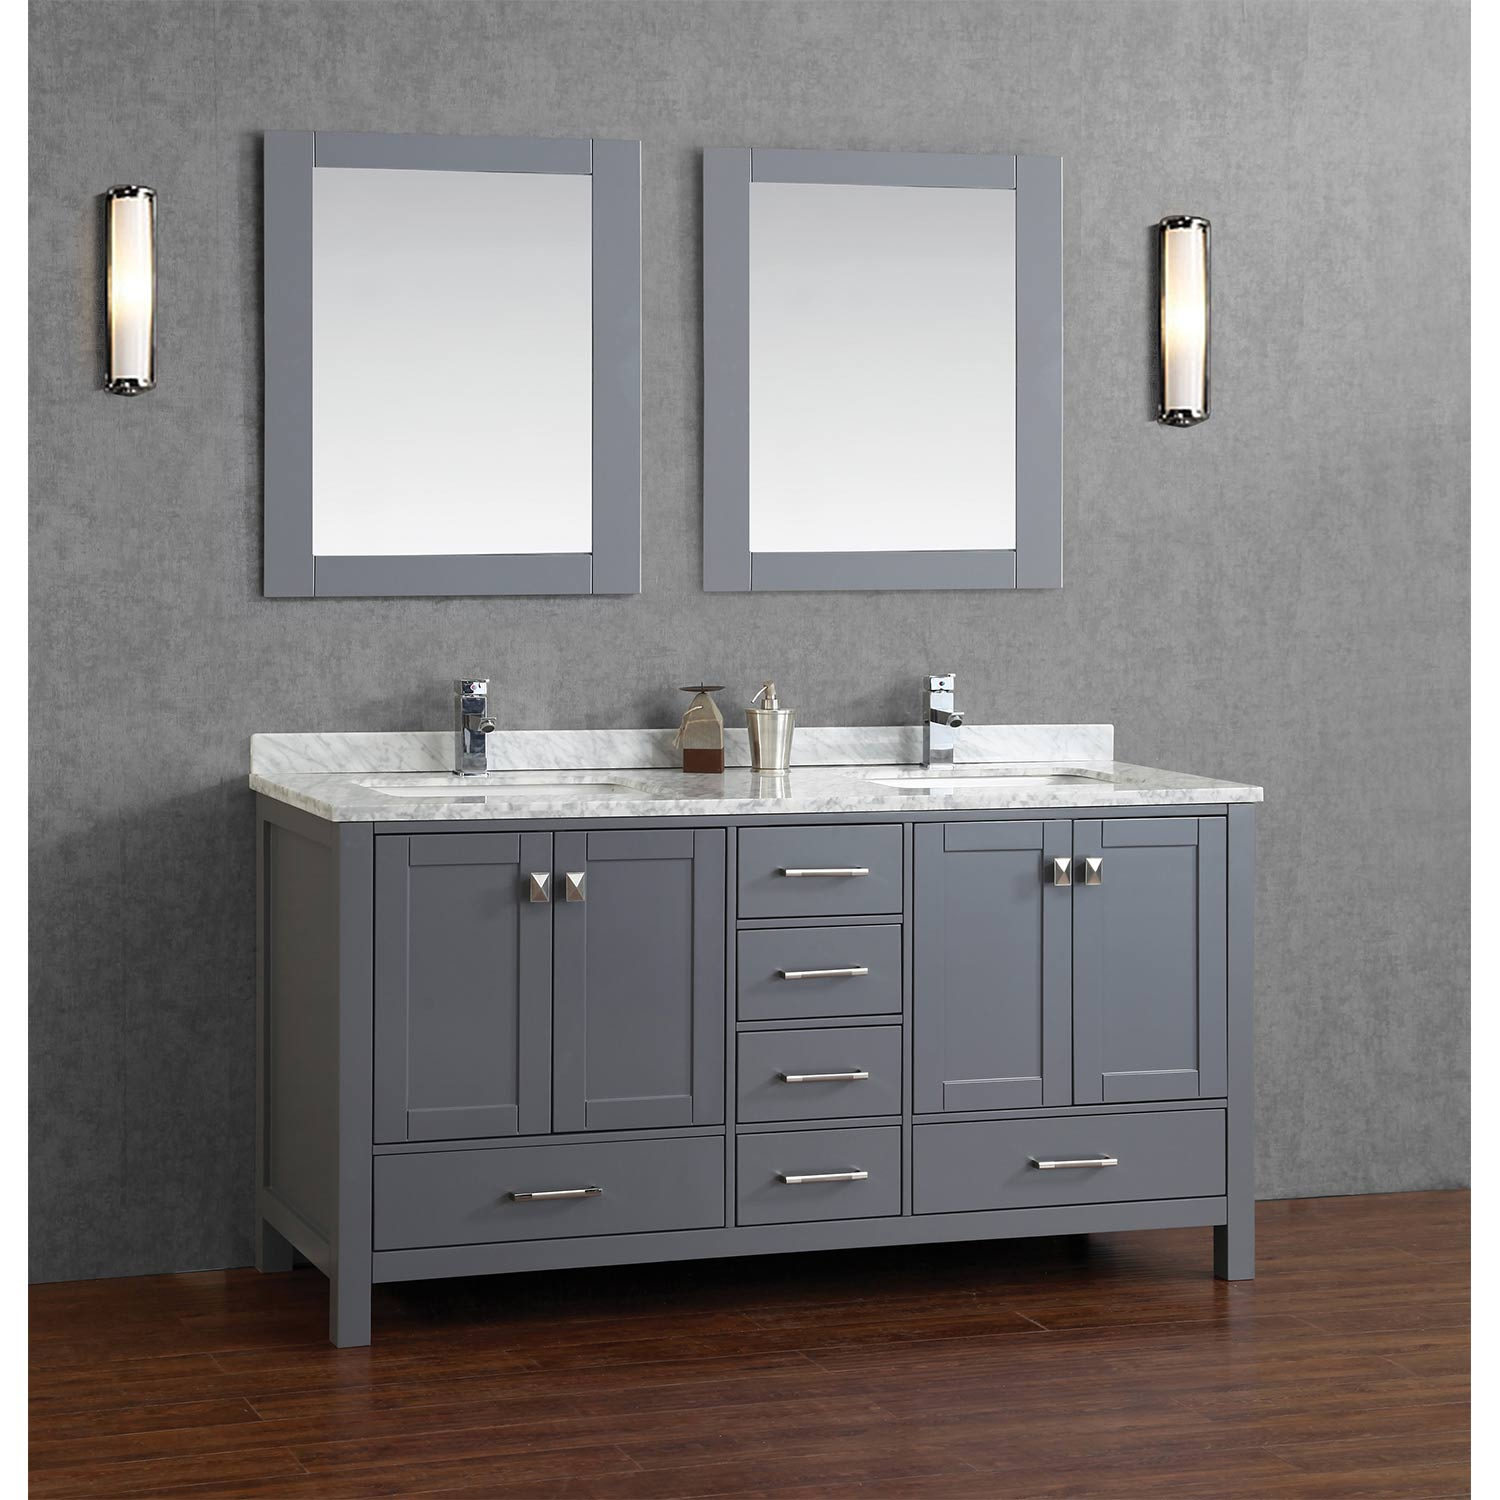 Buy Vincent 72 Inch Solid Wood Double Bathroom Vanity In Charcoal Grey HM 130